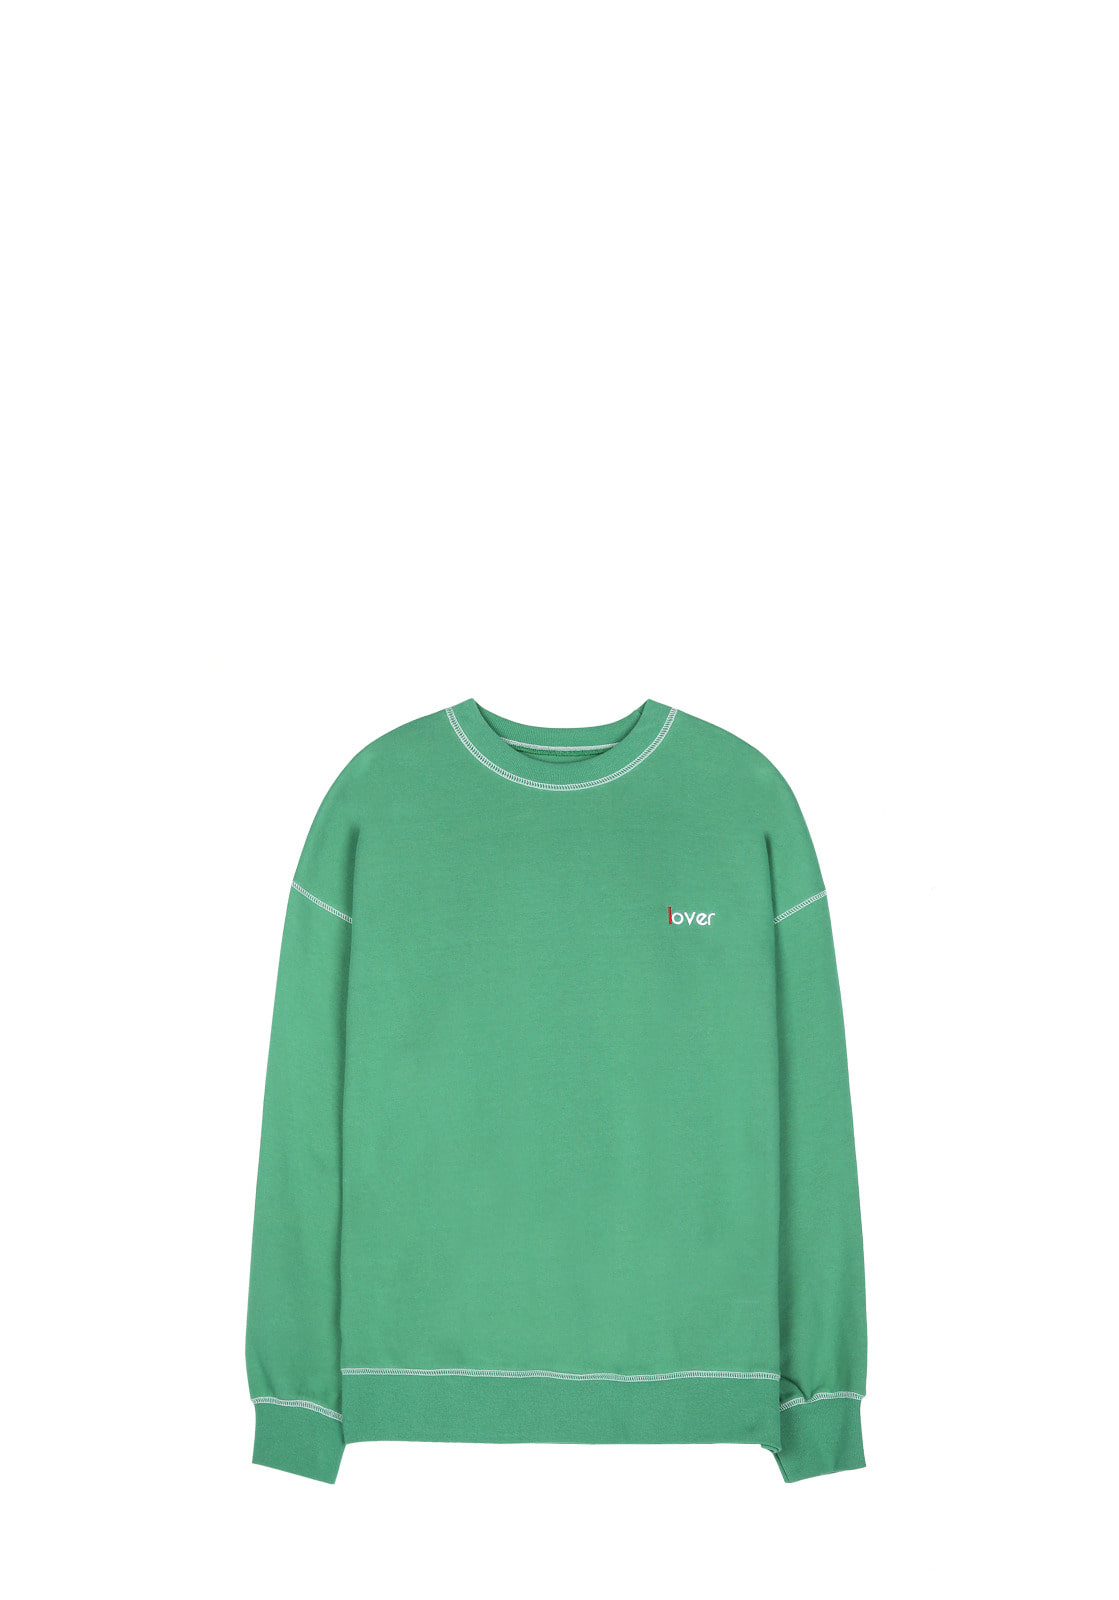 V340 LOVER STITCH SWEATSHIRT  GREEN